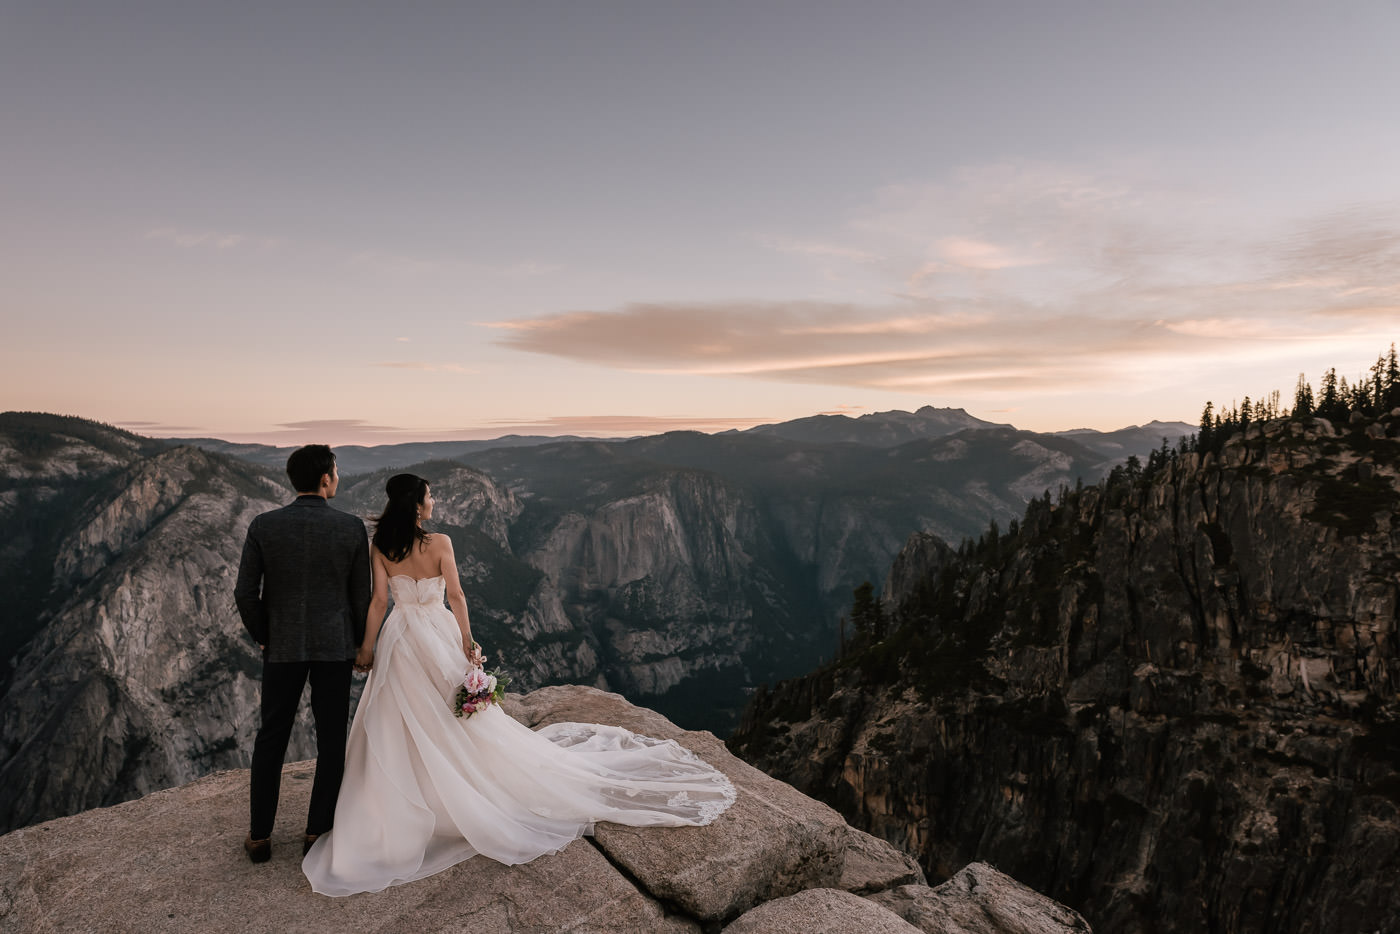 A sunrise elopement session at Taft Point - Sunrise sessions are always a little extra special. It takes a lot of willpower to get out of bed and hit the trail at 4am to make it out to your ceremony site. But it is so worth it. Ayana and Hiroshi chose Taft Point on Yosemite's southern rim for a romantic elopement session as the sun rose on the valley below. Taft Point has always been a favorite spot of mine, so it was nothing short of a dream come true photographing a couple so in love there. But the day was still young and we were feeling adventurous.